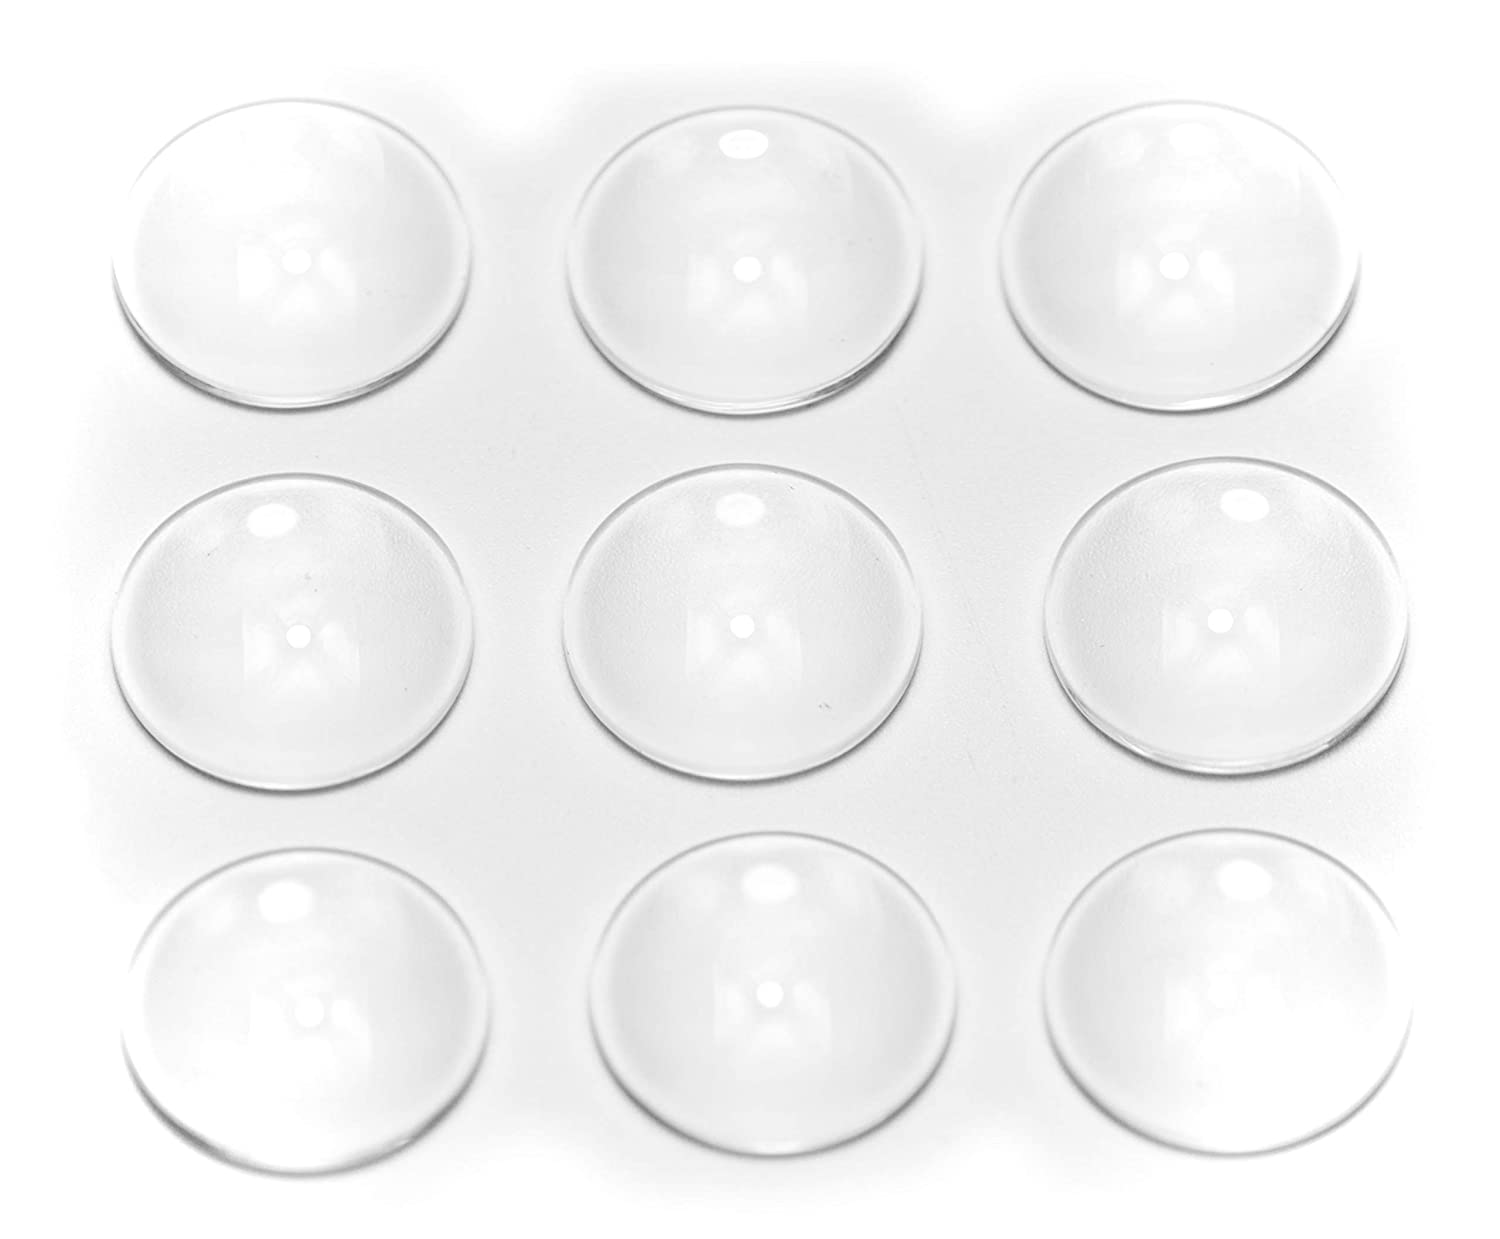 25mm-20pcs ALL in ONE 20pcs Flat Back Clear Glass Dome Cabochons Clear Magnifying Cabs Non-calibrated for DIY Photo Pendant Craft Jewelry Making